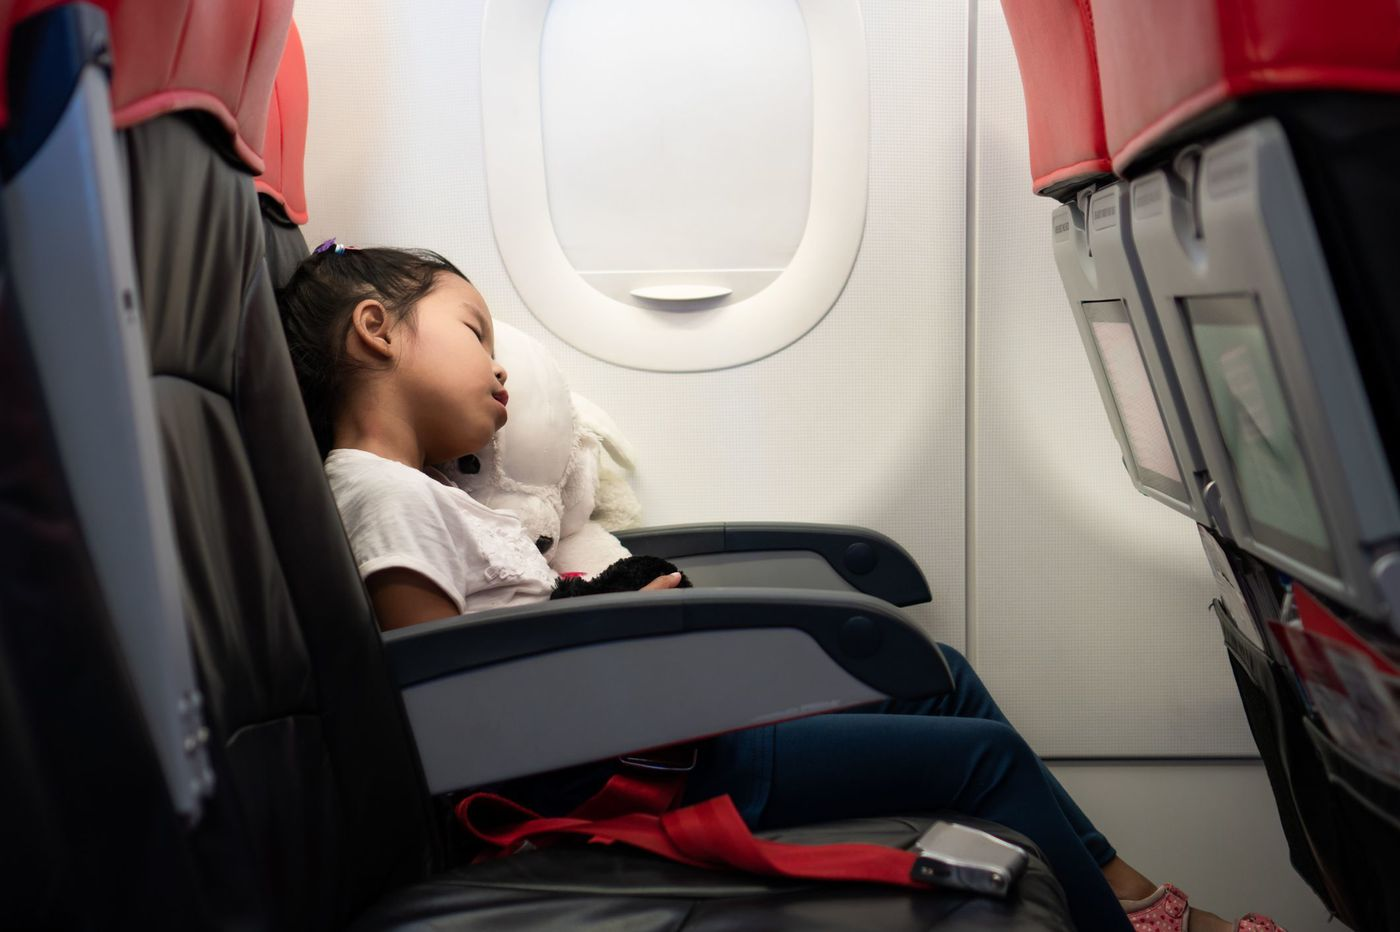 How parents can protect kids from suffering medical emergencies on flights